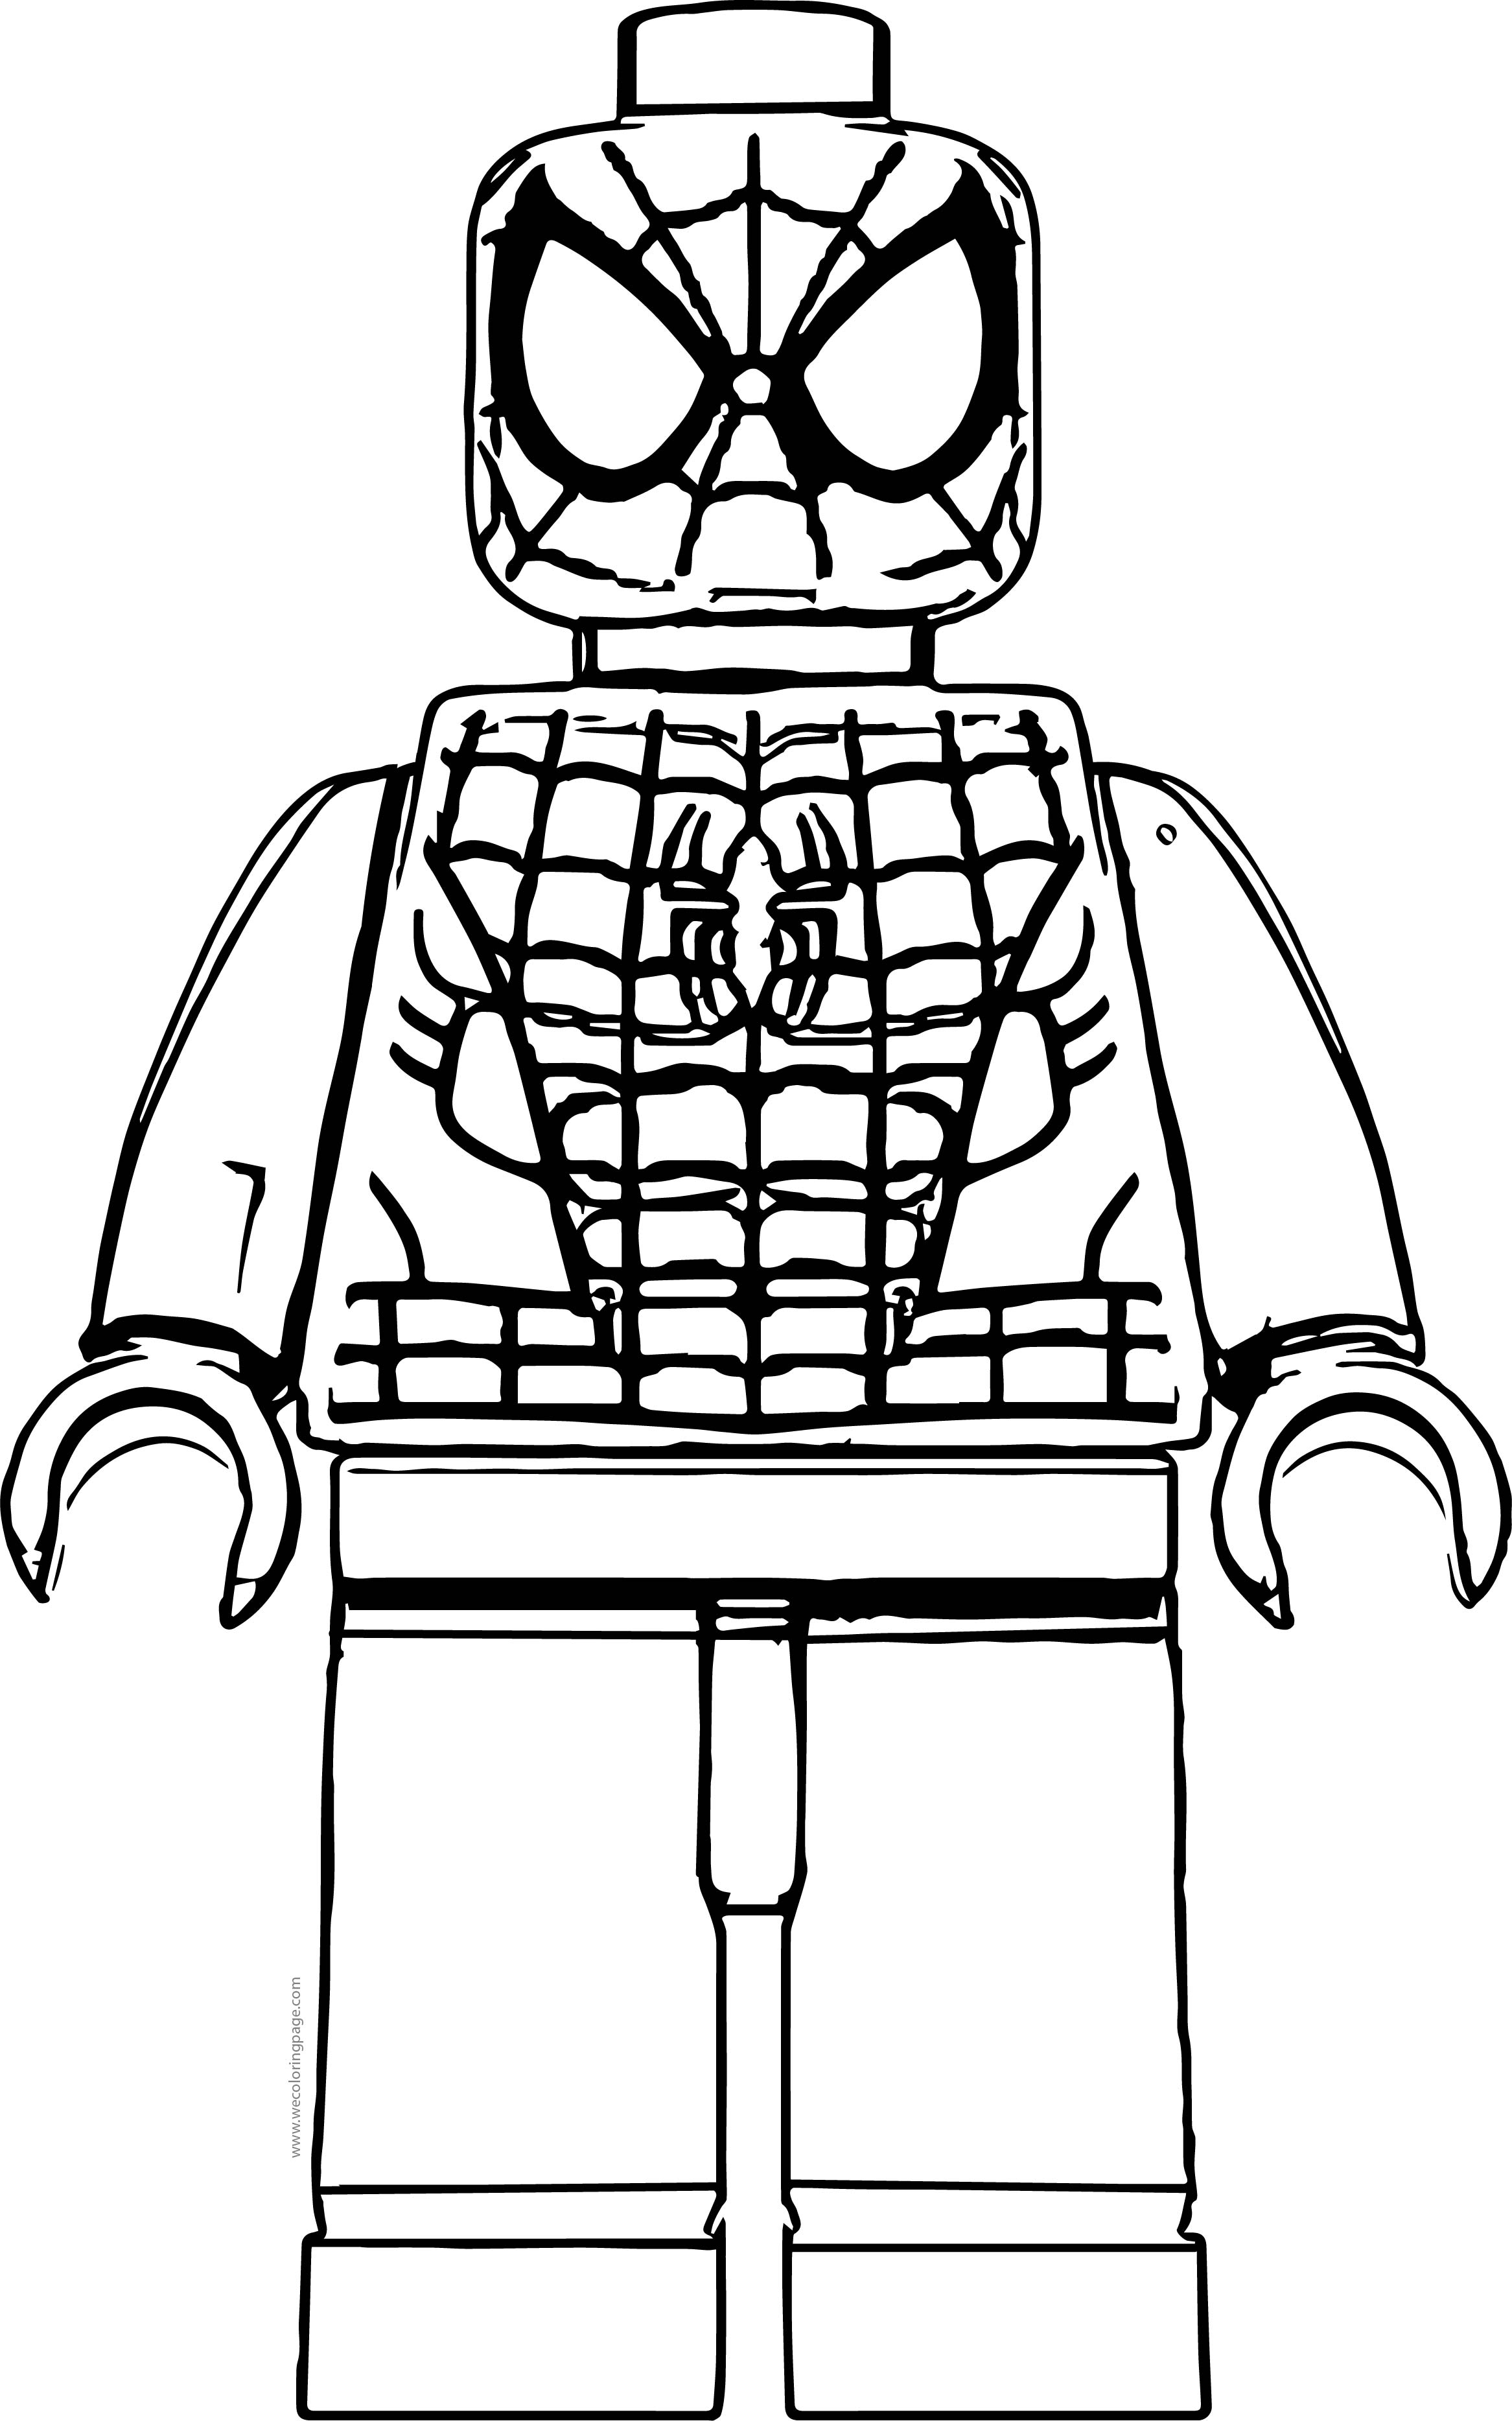 Lego Spiderman Printable Coloring Pages   Coloring Data Order